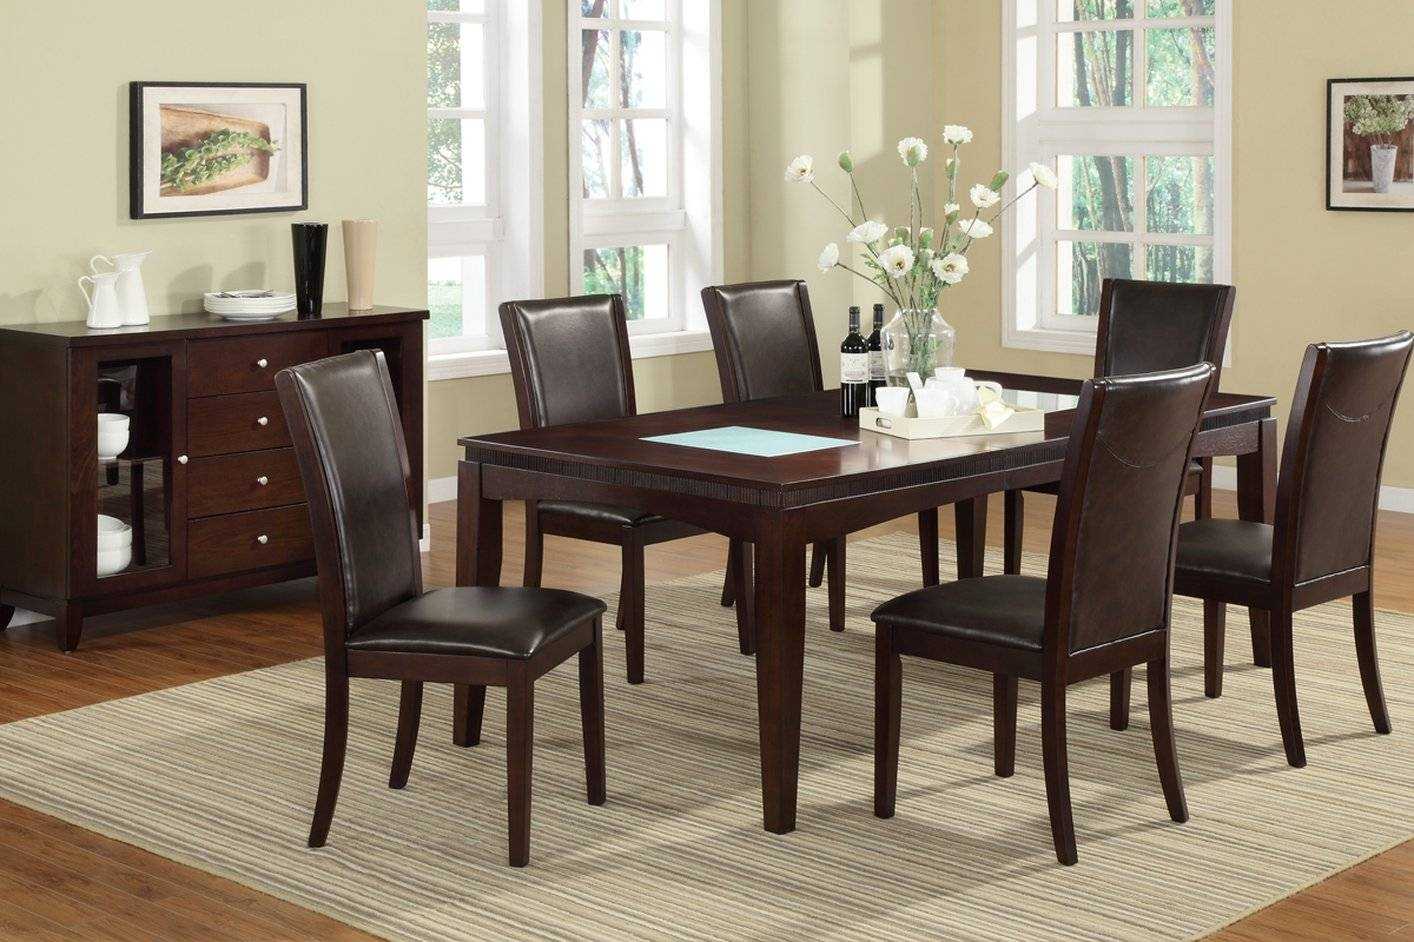 Brown Glass Dining Table - Steal-A-Sofa Furniture Outlet Los throughout Dining Table With Sofa Chairs (Image 3 of 15)